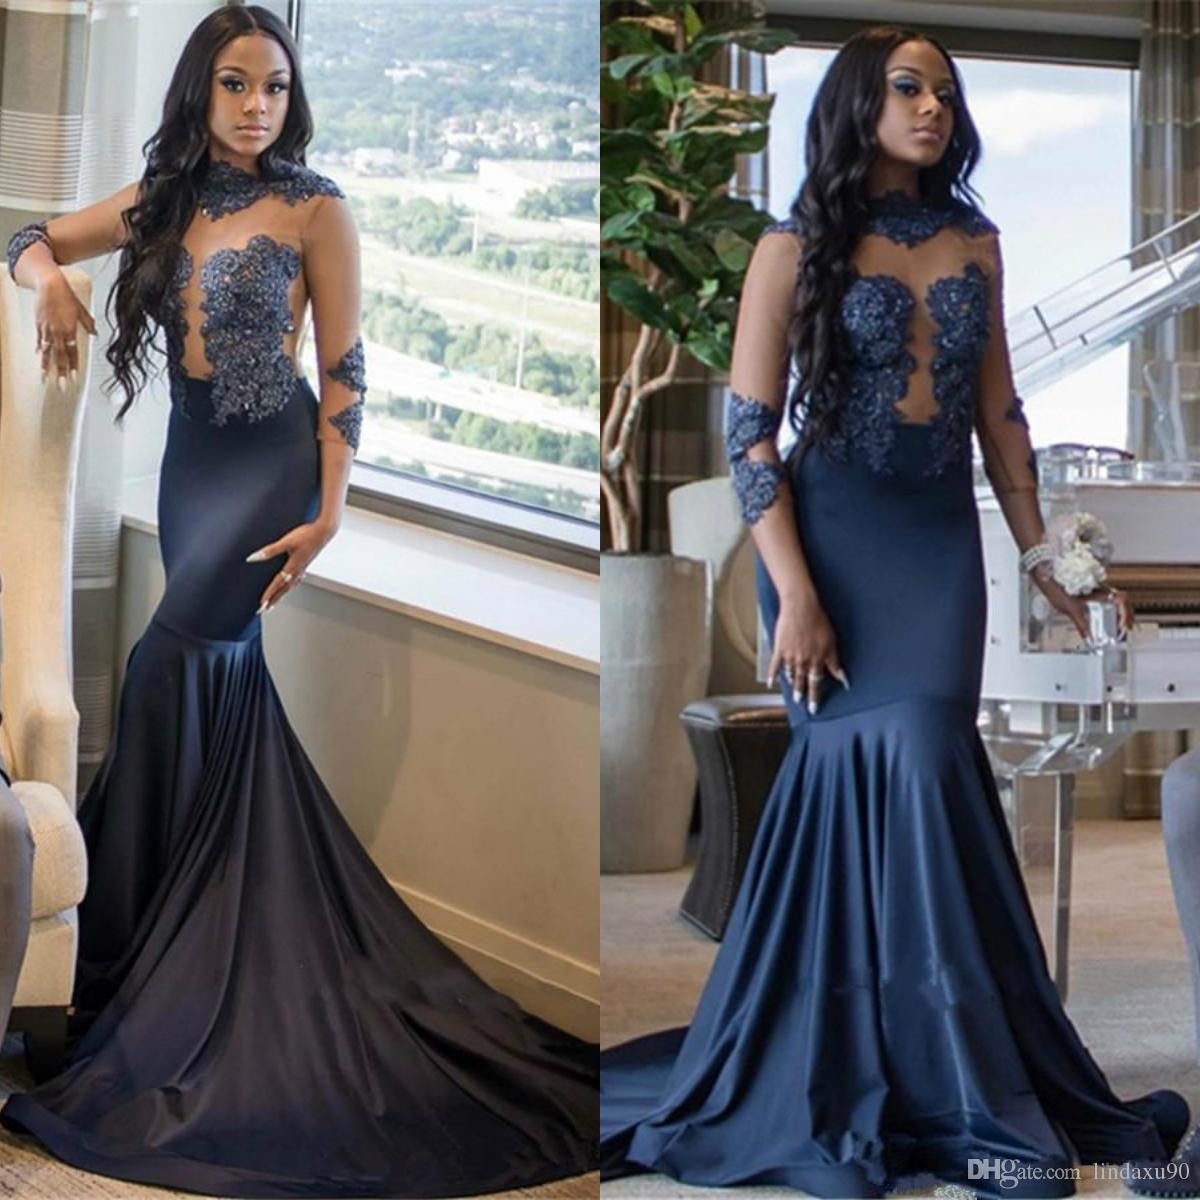 a528d132bf63 Dark Navy 2019 Mermaid Prom Dresses African Long 3/4 Sleeve Lace Beads Evening  Gowns Jewel Neck Plus Size Black Girls Dress Long Red Prom Dresses Long ...